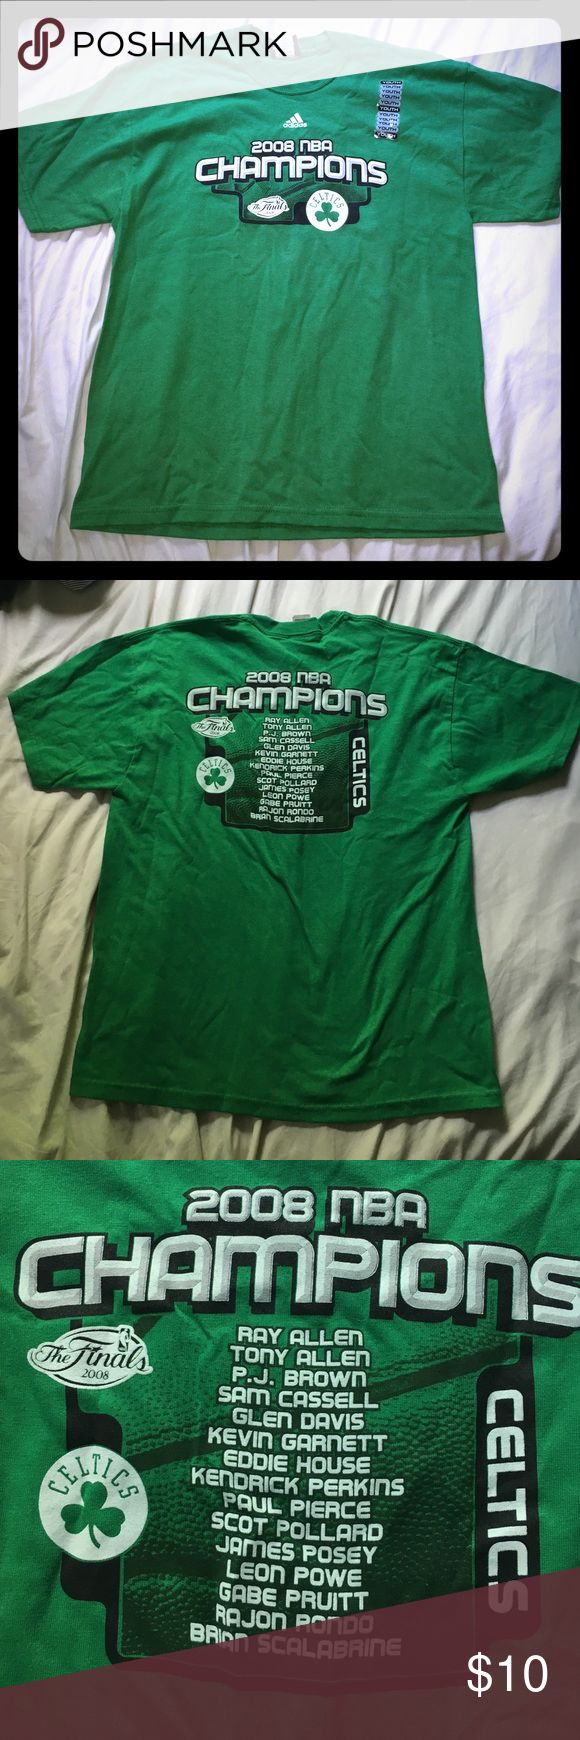 Youth XL Celtics NBA championships shirt NWOT, sticker shows it has never been worn or washed. This is child sized!!! Youth XL. Could fit a women's small or medium comfortably. adidas Shirts & Tops Tees - Short Sleeve